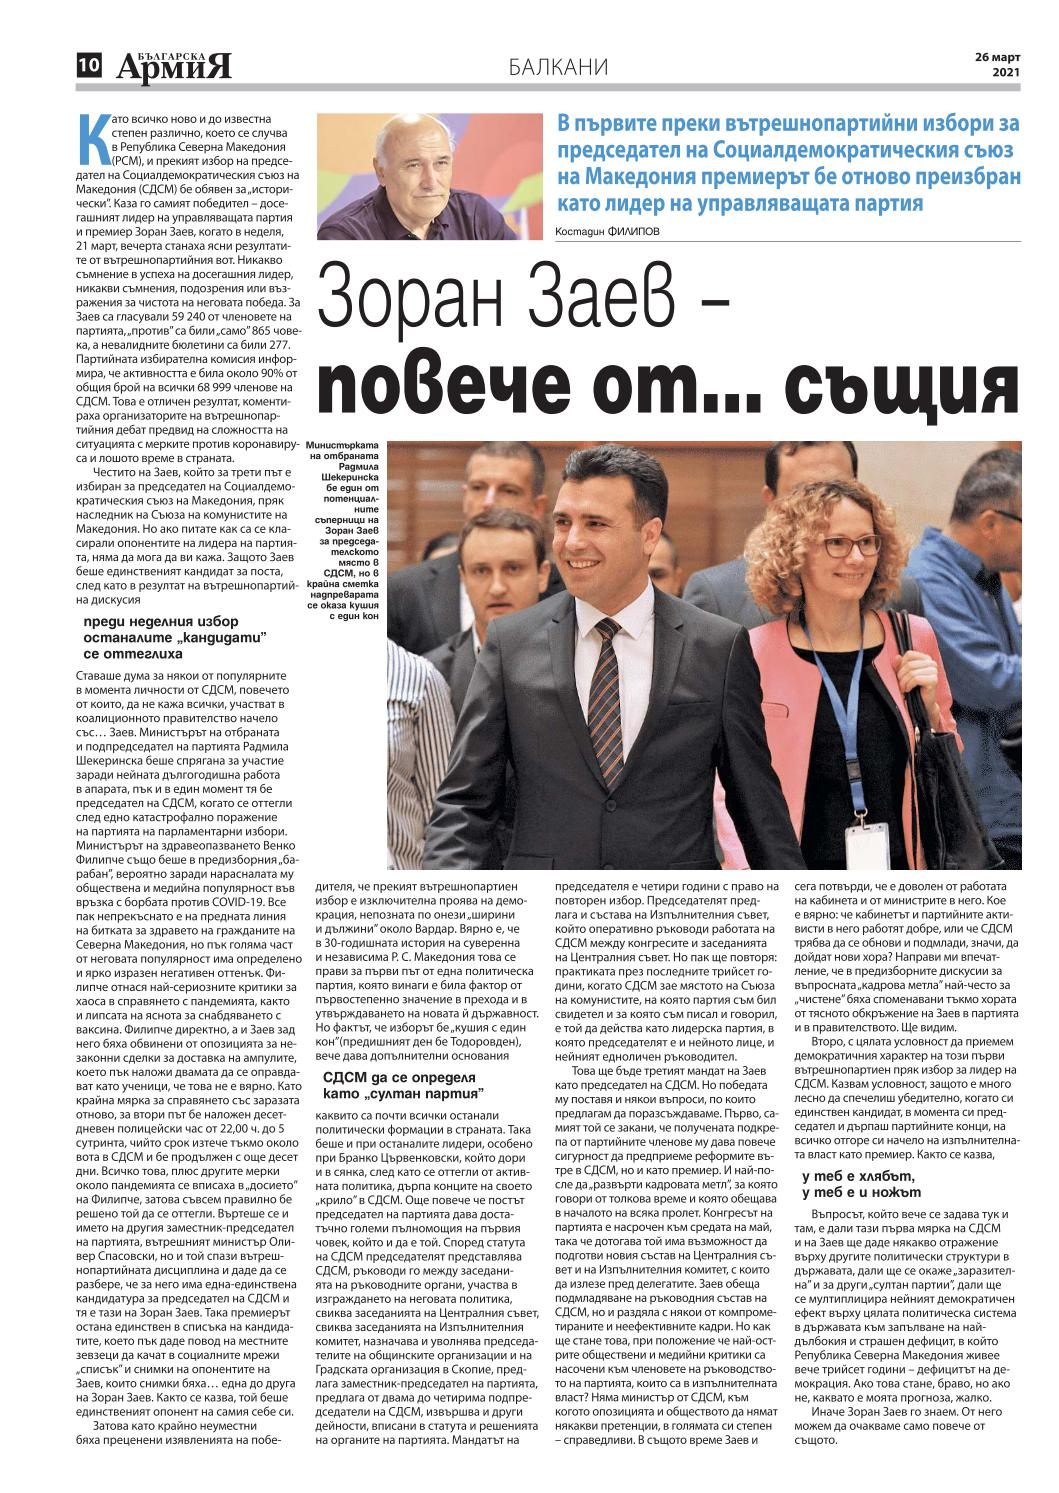 https://armymedia.bg/wp-content/uploads/2021/03/10.page1_-156.jpg